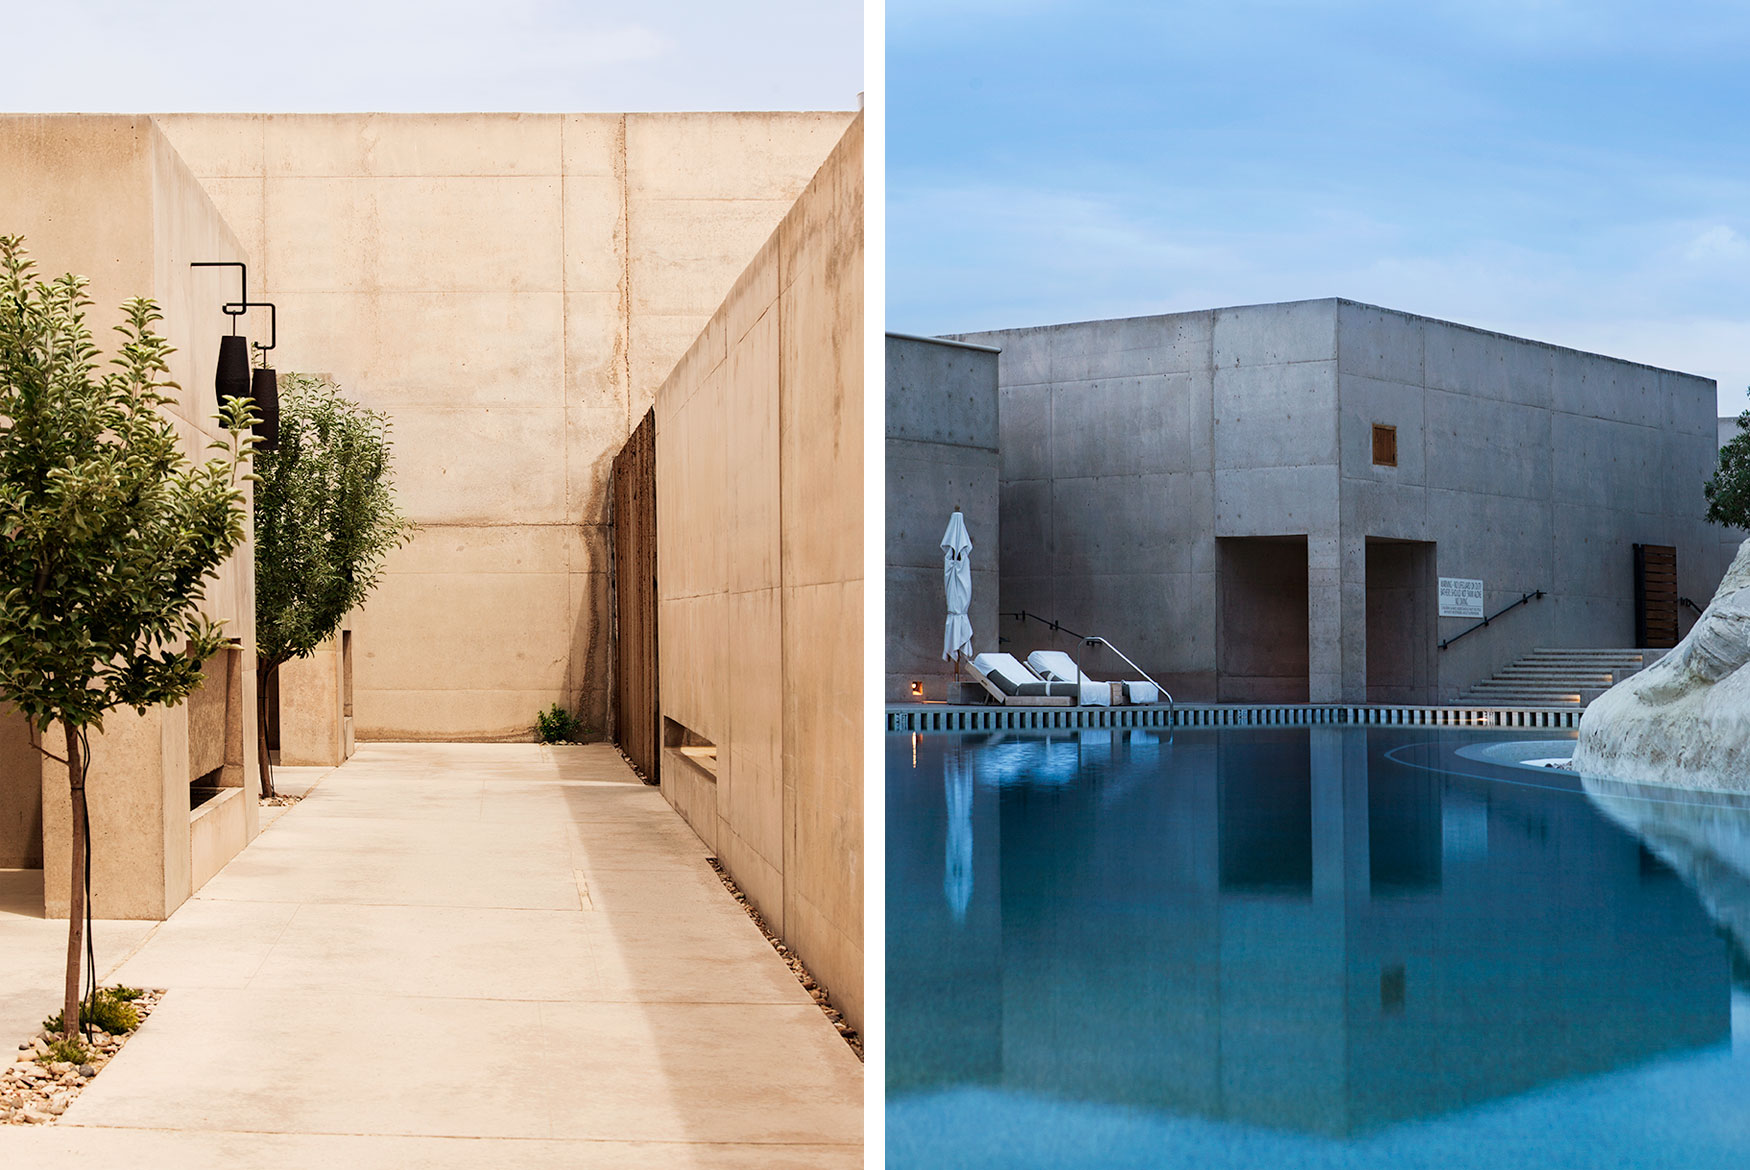 In the  Architecture/Hospitality  section I added images from The Amangiri Resort located in the South Eastern part of Utah. I had one of the most divine experiences here in a long time during the summer heat last year.